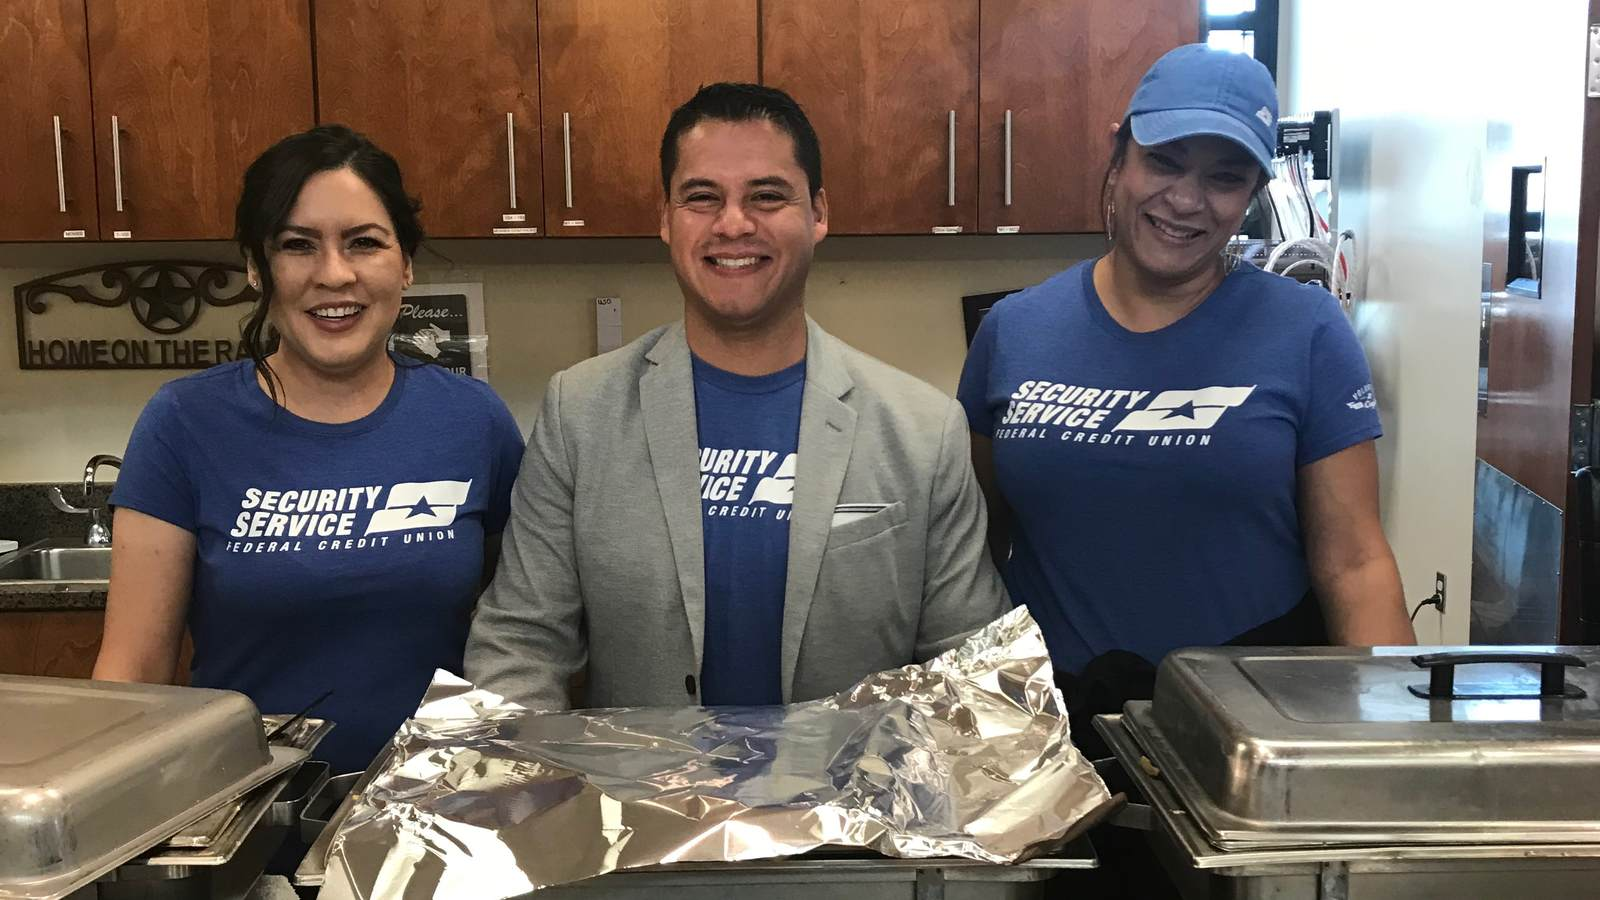 Holiday Meal Sponsored By Security Service Federal Credit Union Uso El Paso